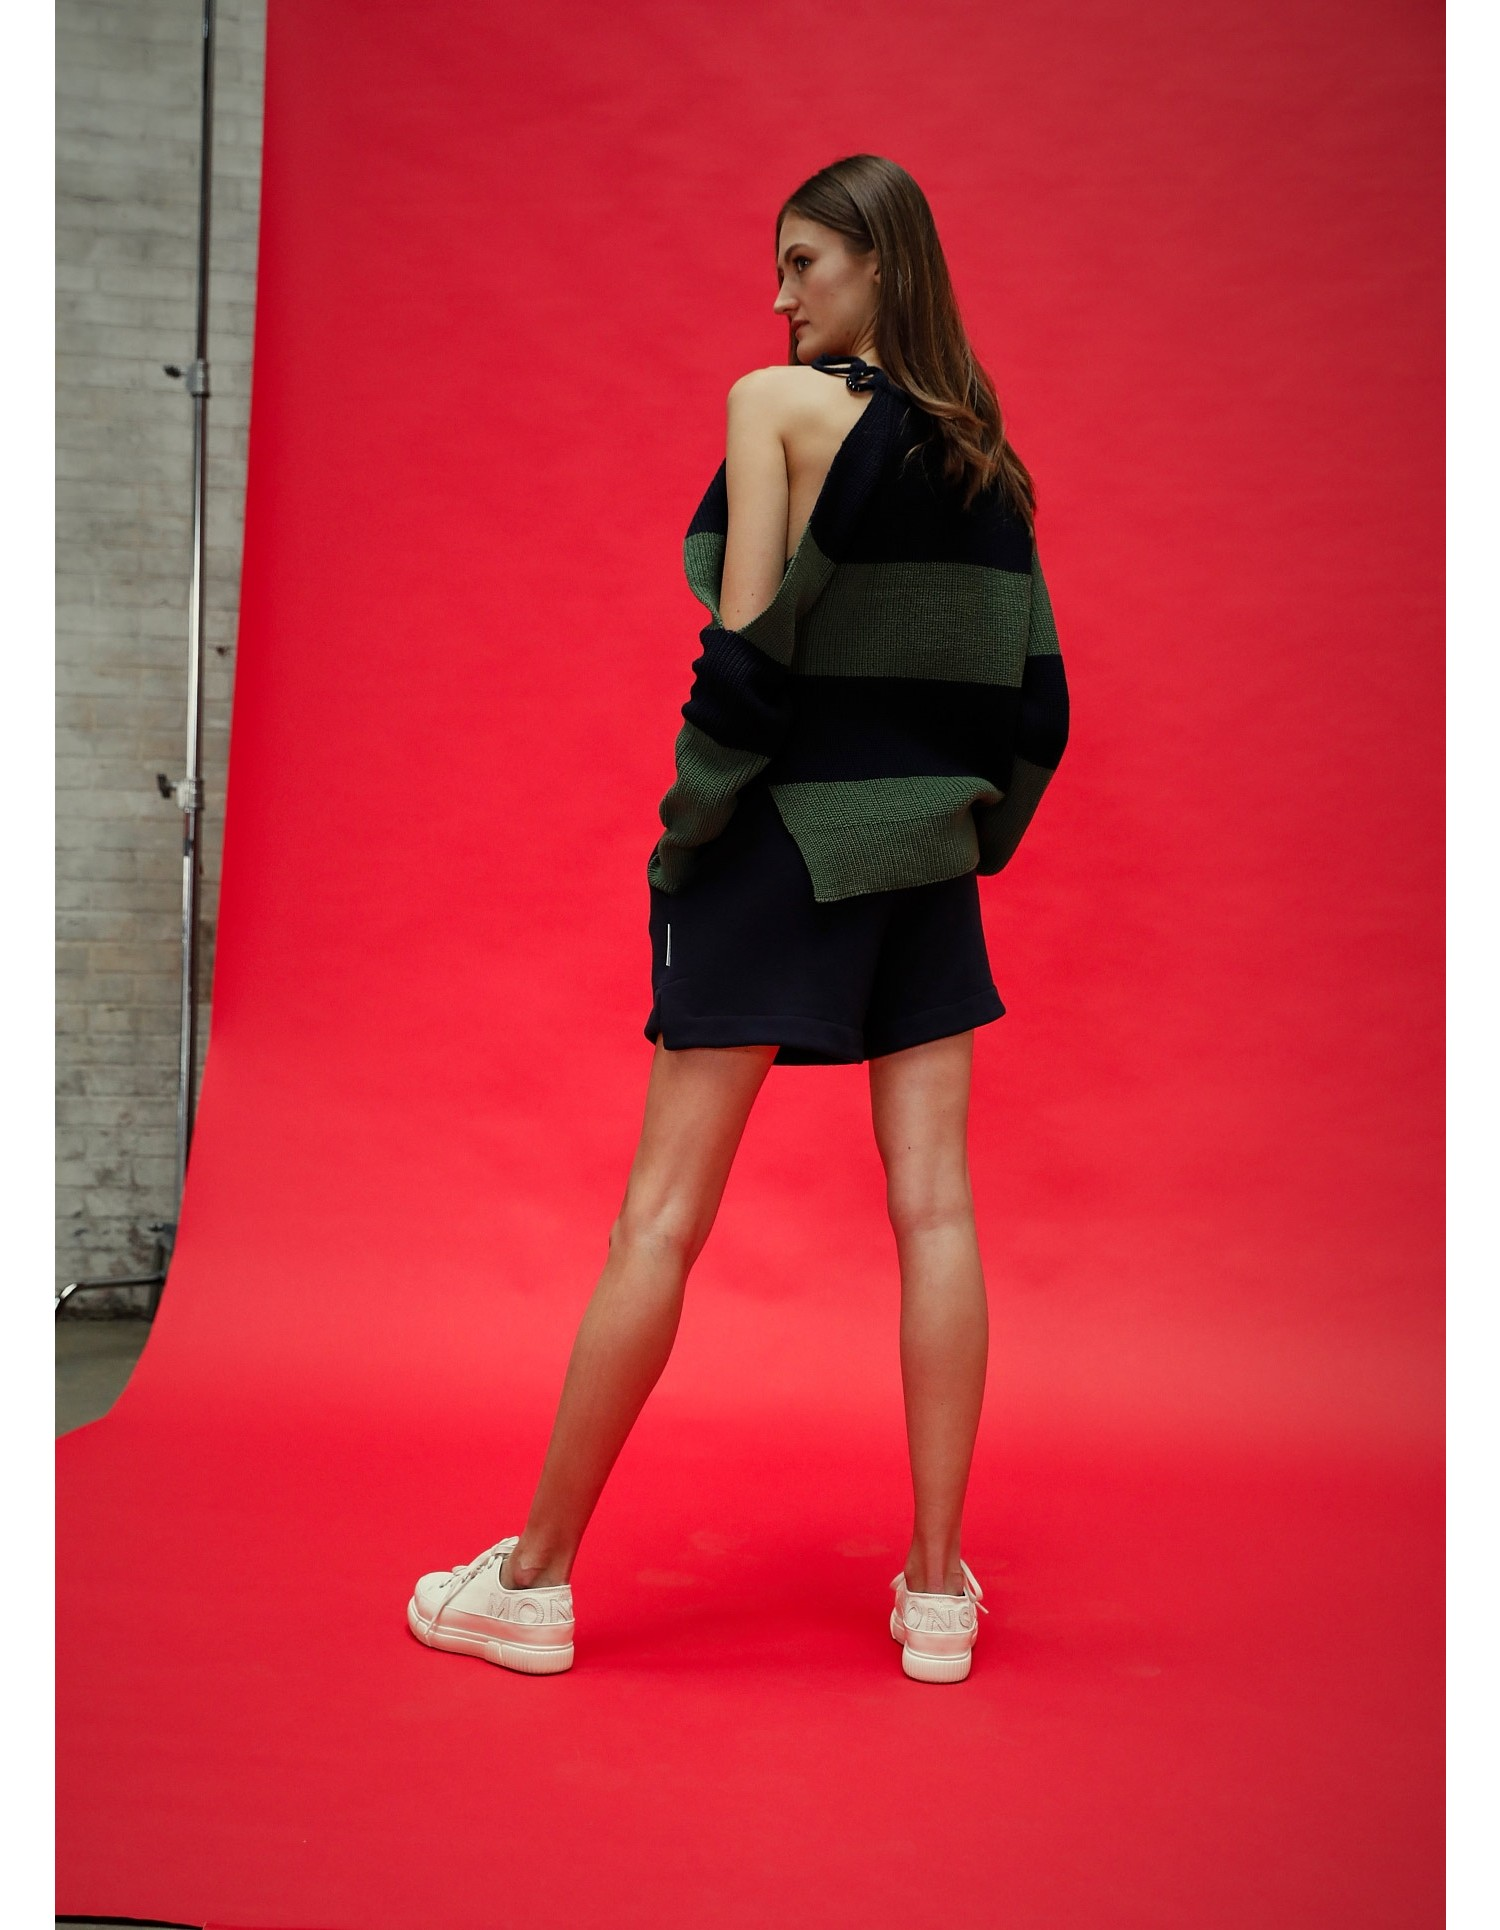 MONSE Stripe Buckle Shoulder Sweater in Midnight and Olive on Model Back View